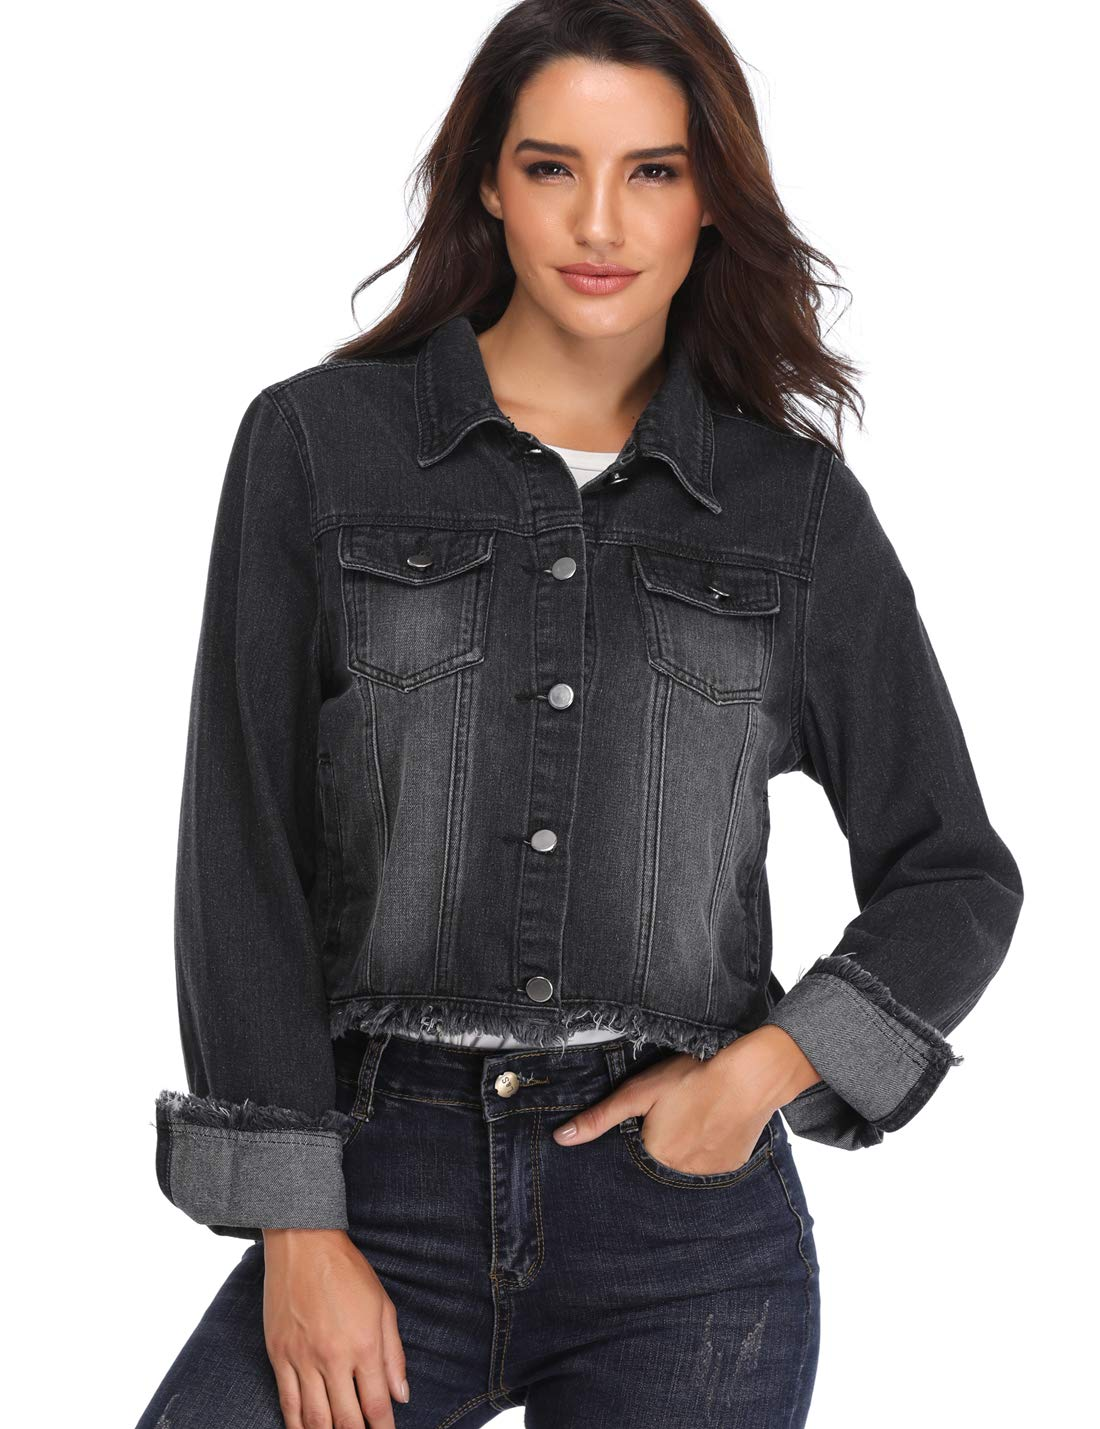 MISS MOLY Jean Jackets for Women Button up Turn Down Collar Frayed Denim Washed Crop Coat (Black, X-Large/US-18)